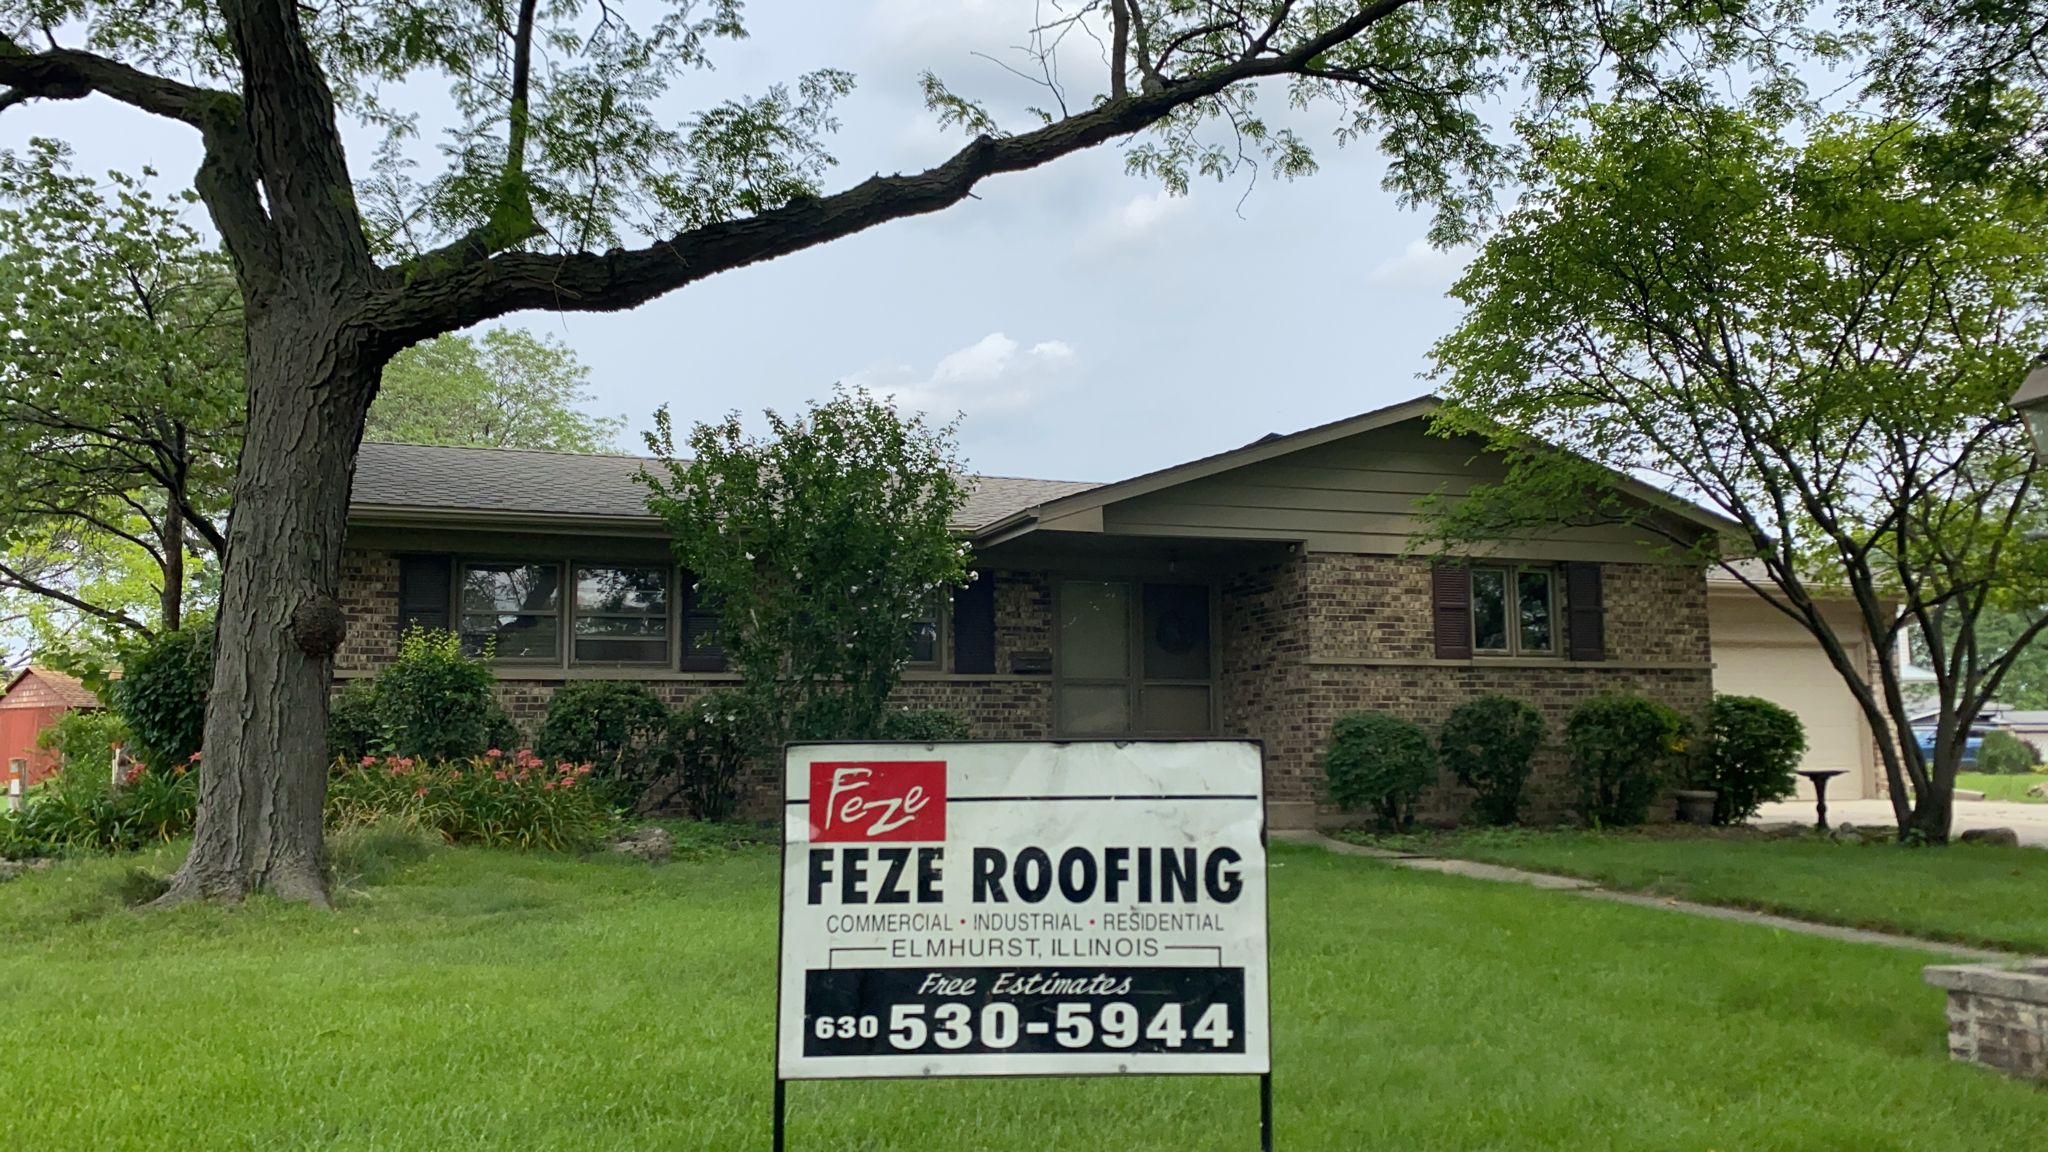 Weathered Wood roof by Feze Roofing Inc. in Elmhurst, IL